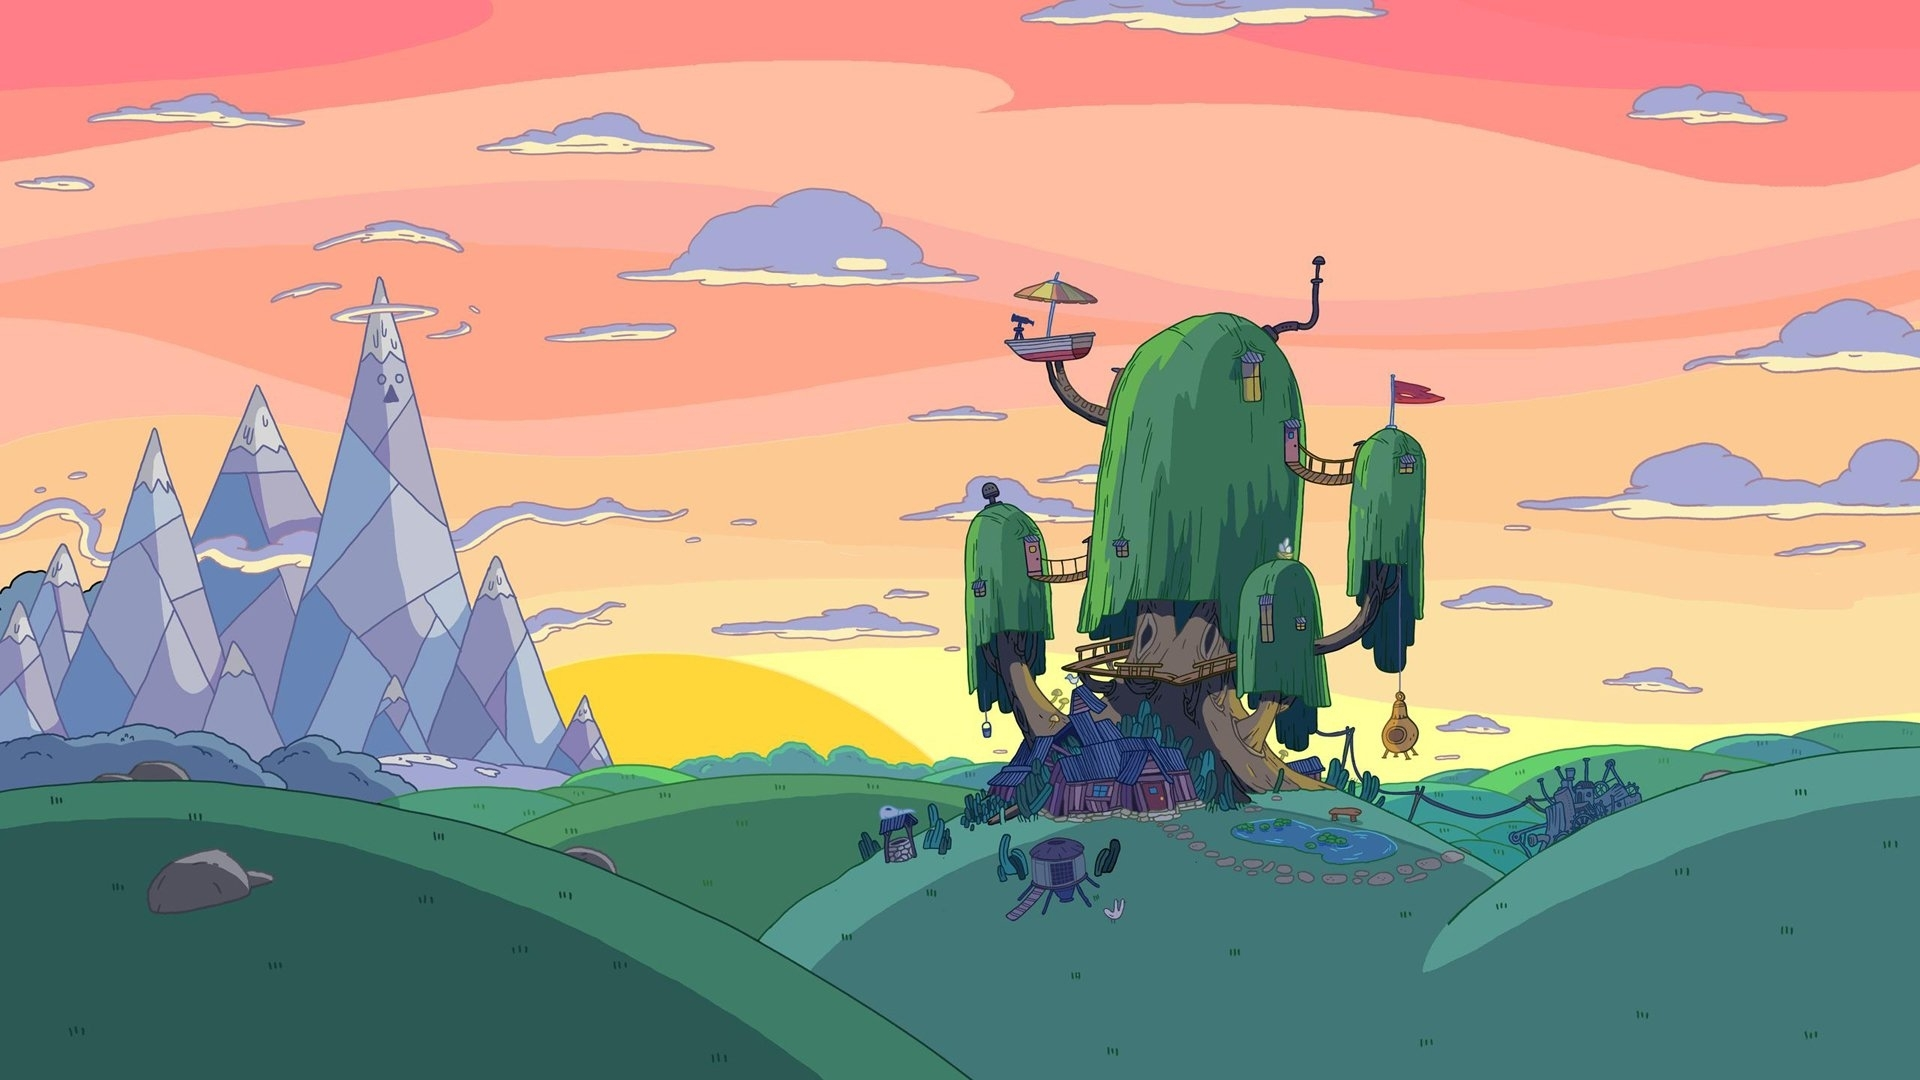 335 adventure time hd wallpapers | background images - wallpaper abyss